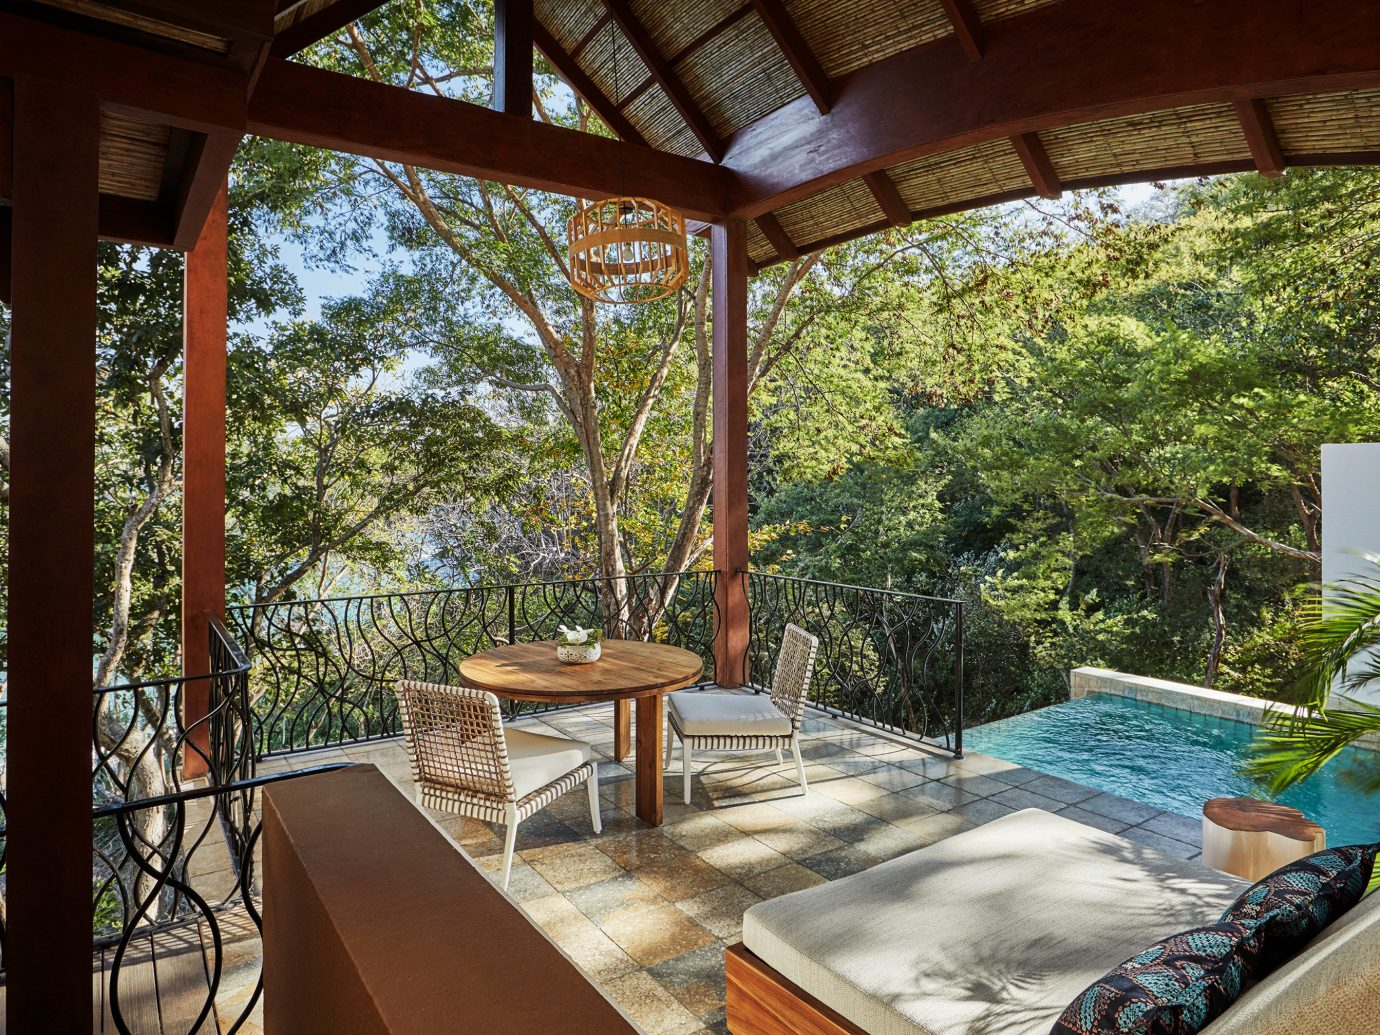 Outdoor private space at the Four Seasons Costa Rica